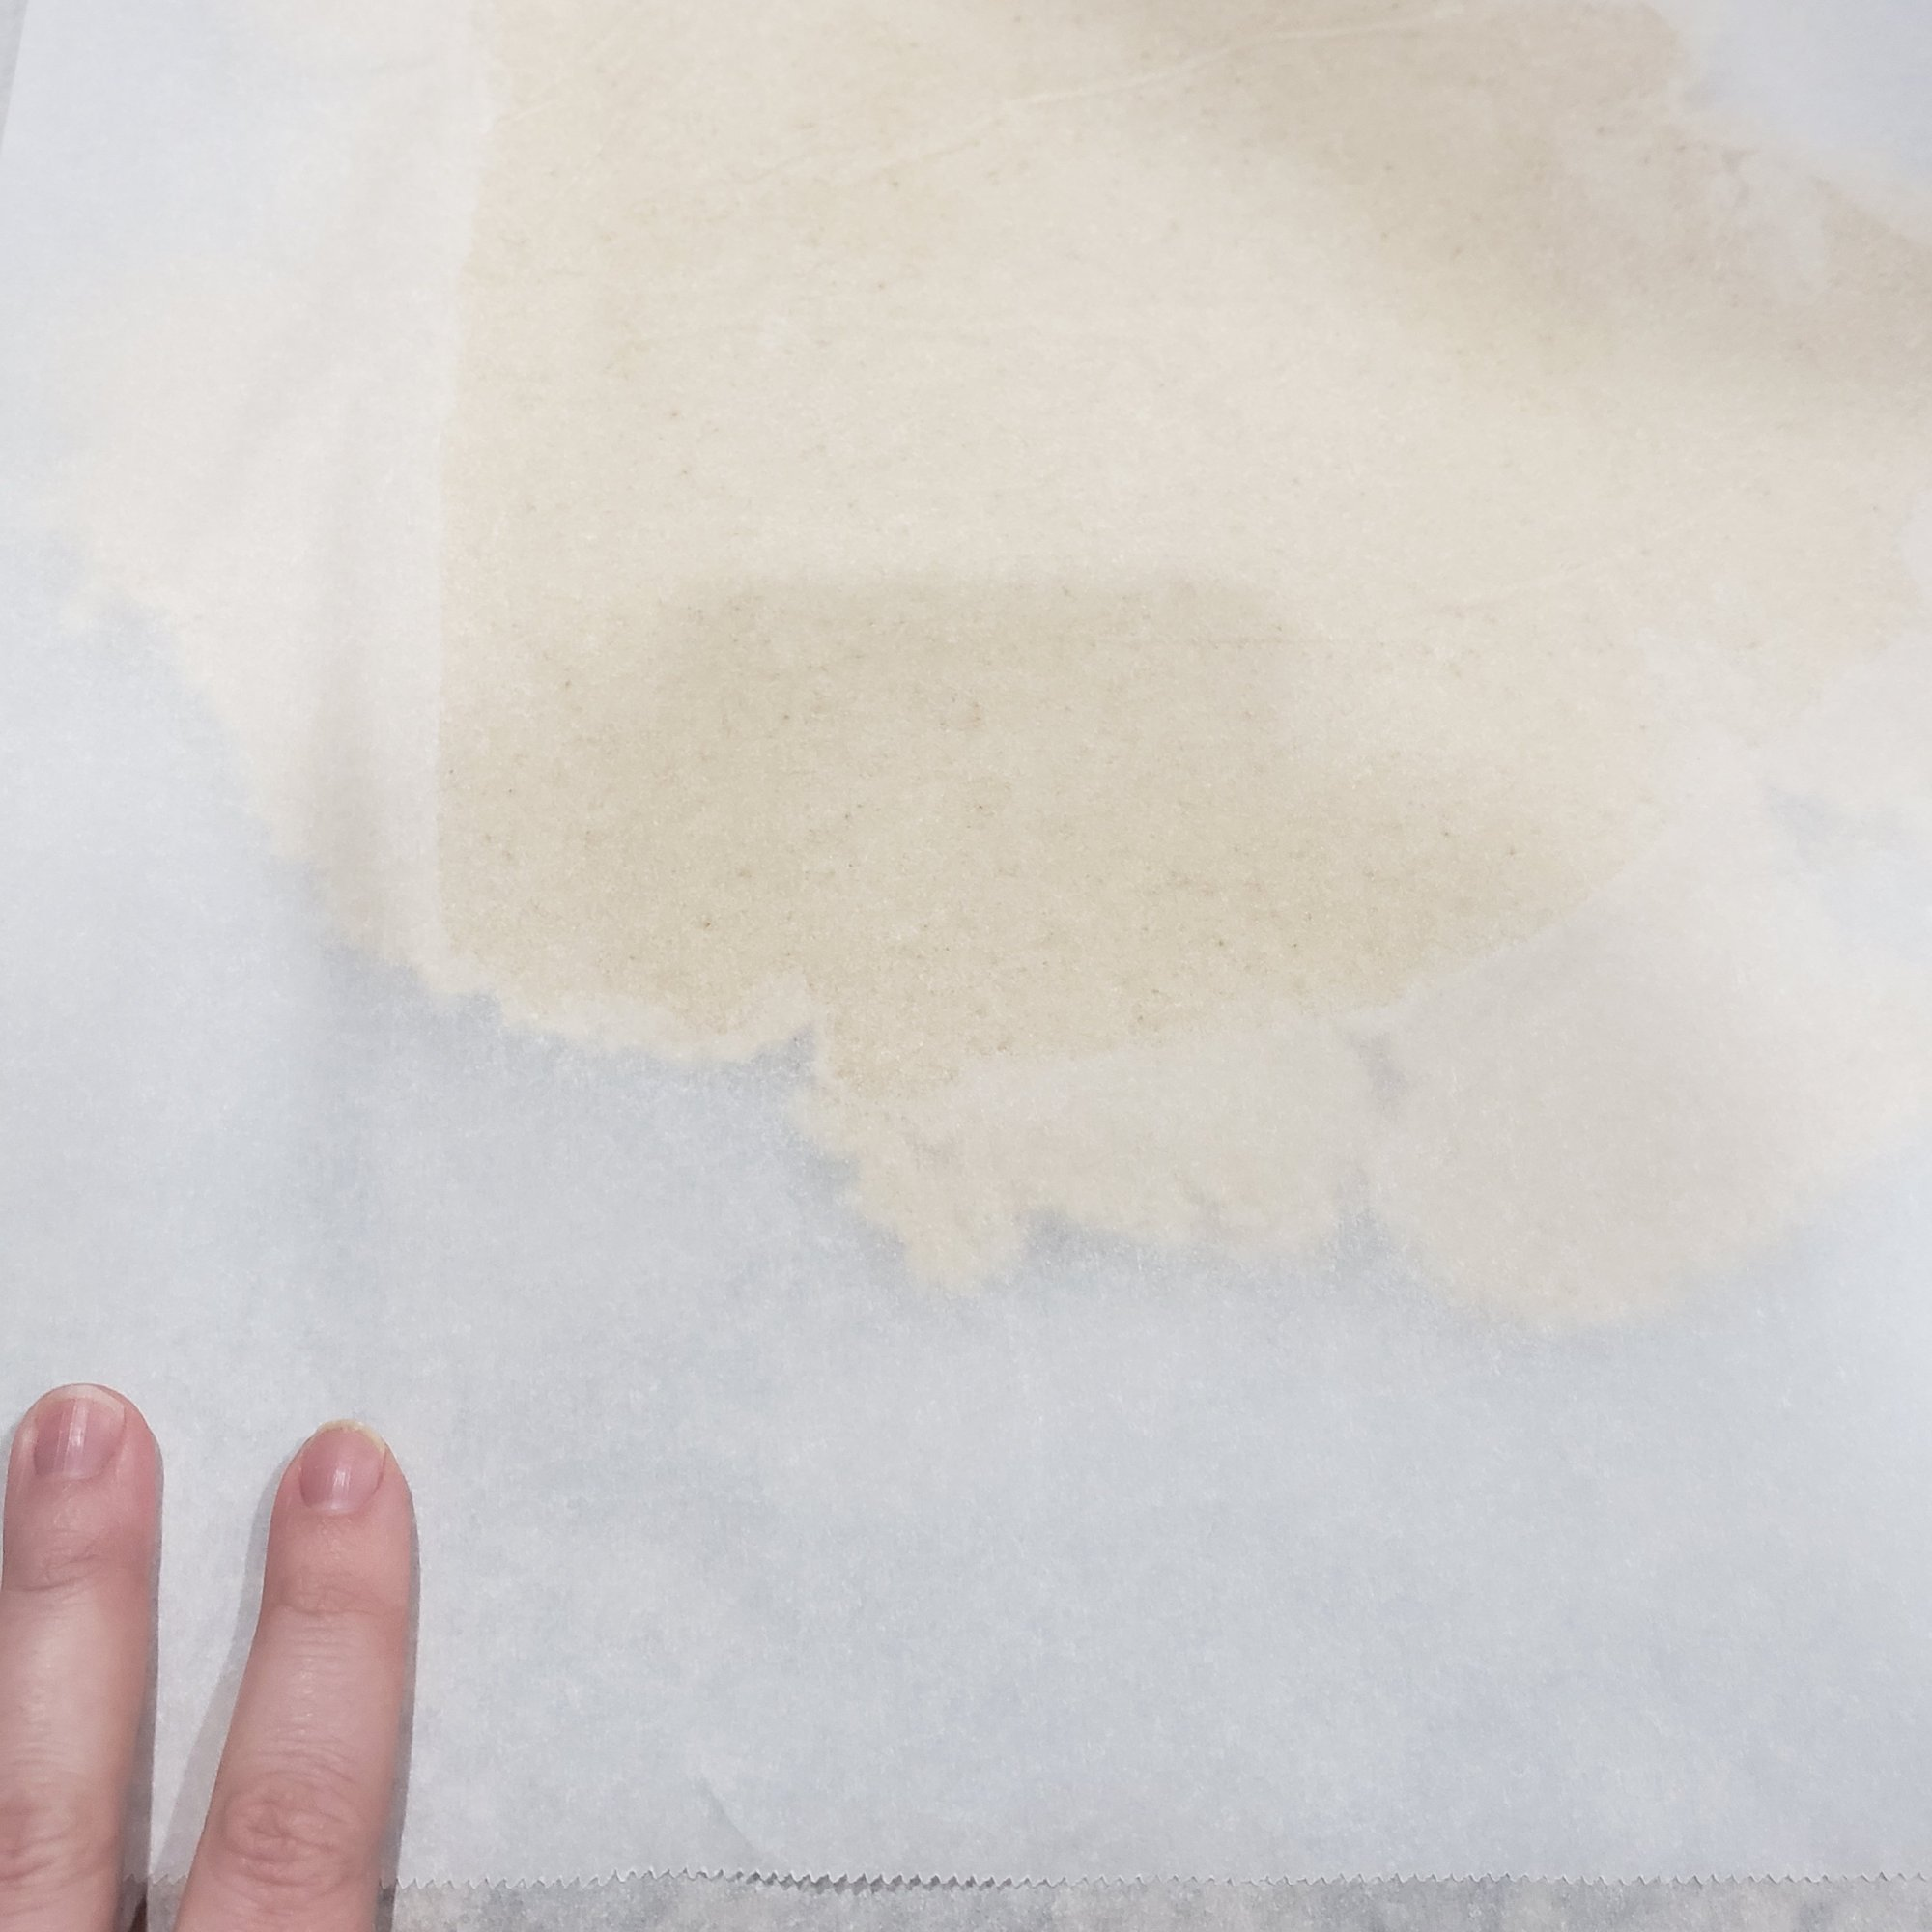 sugar cookie dough spread between parchment paper